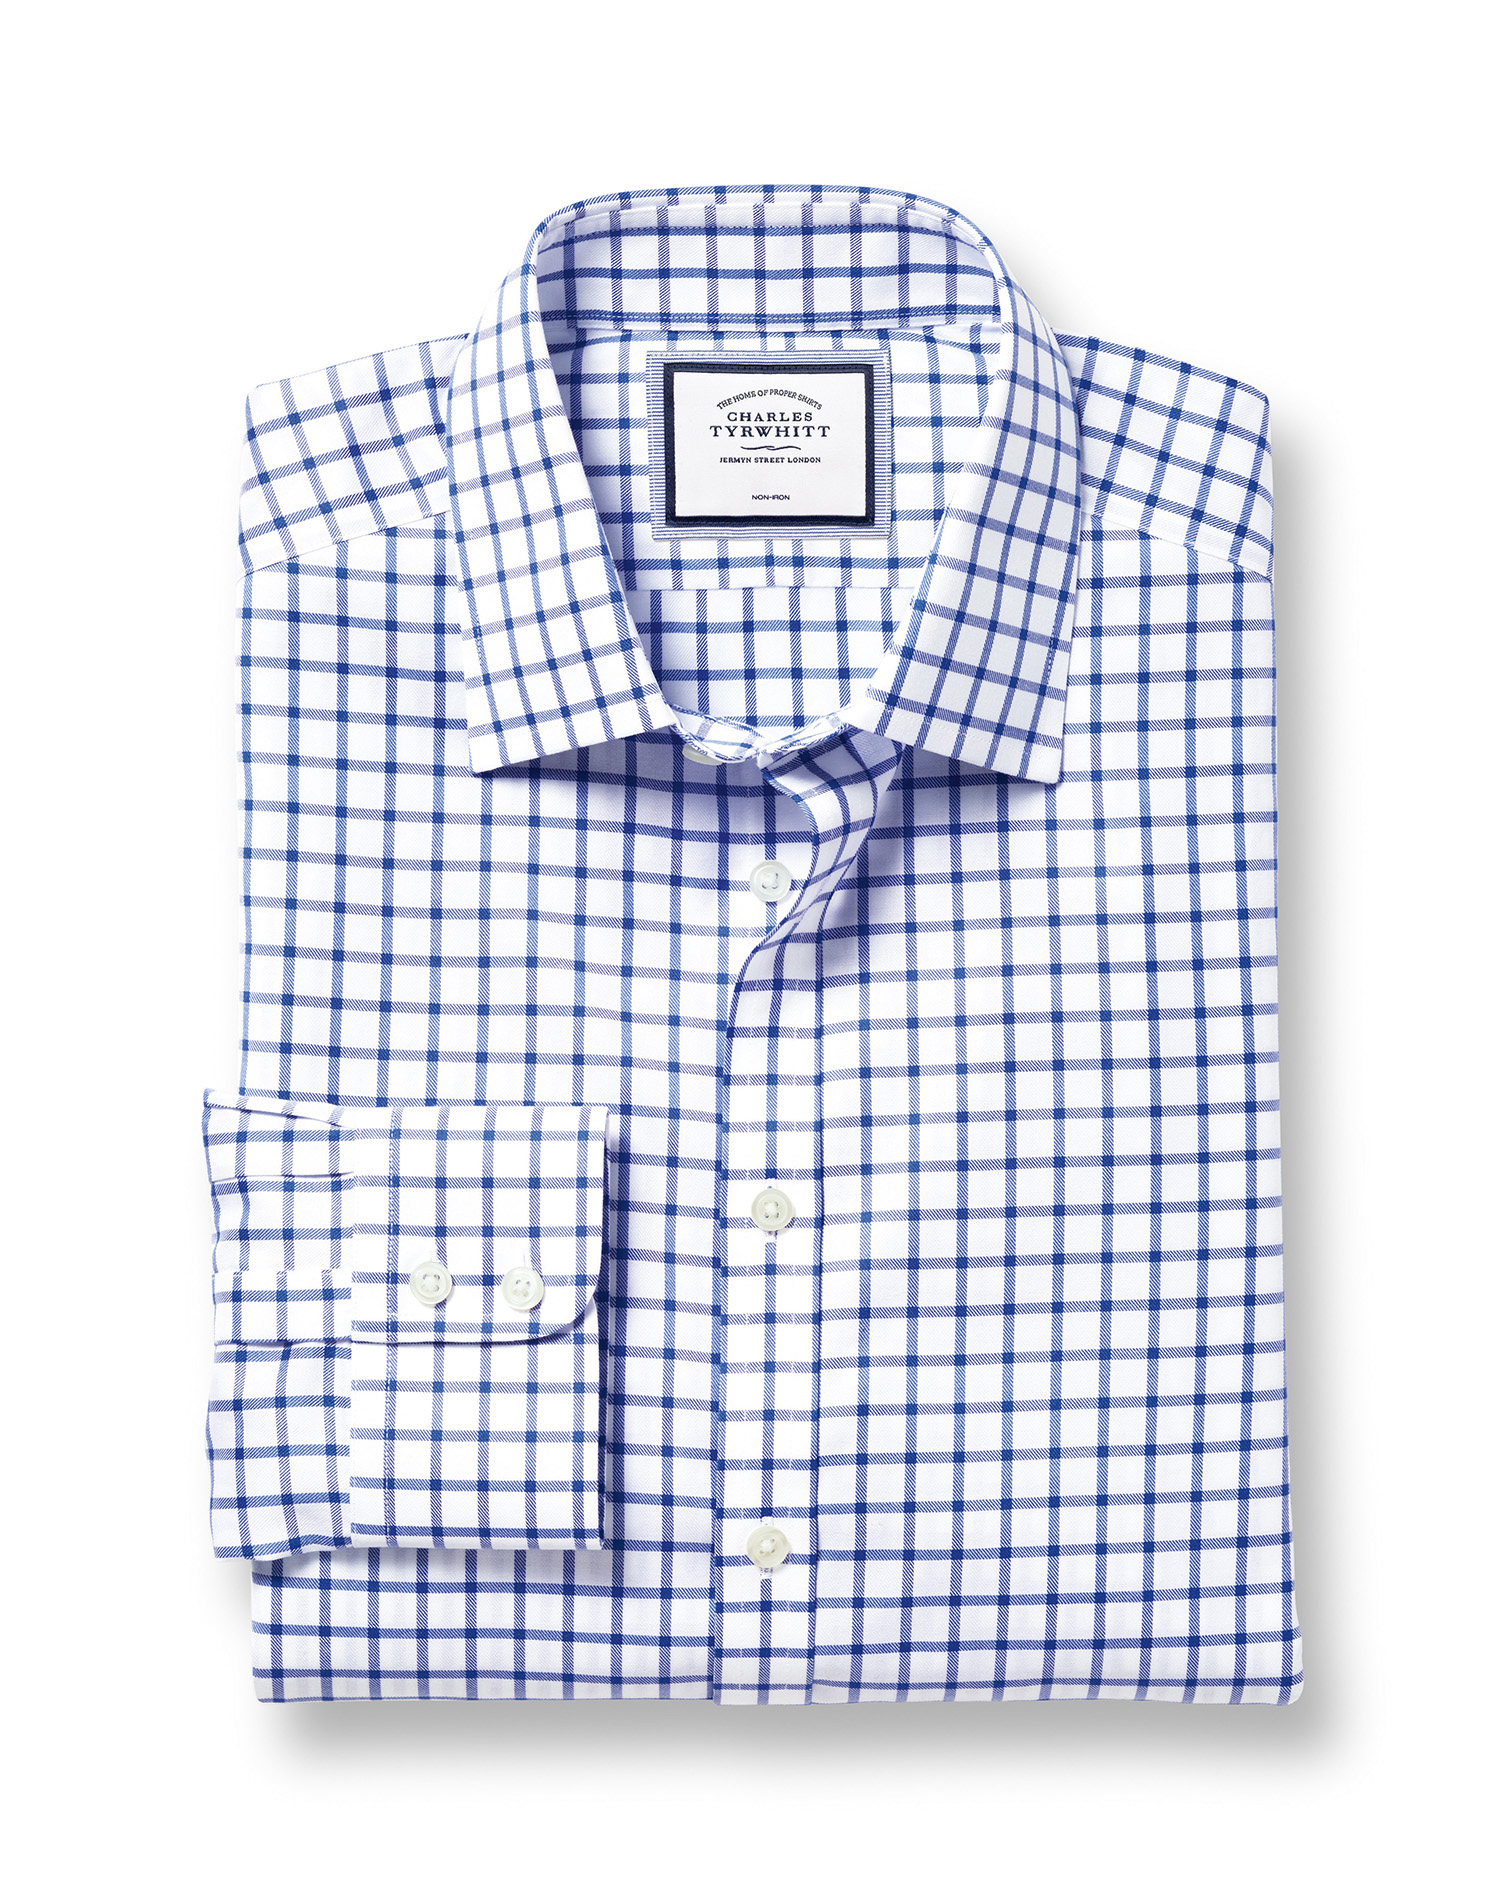 Slim Fit Non-Iron Twill Grid Check Royal Blue Cotton Formal Shirt Single Cuff Size 16.5/35 by Charle